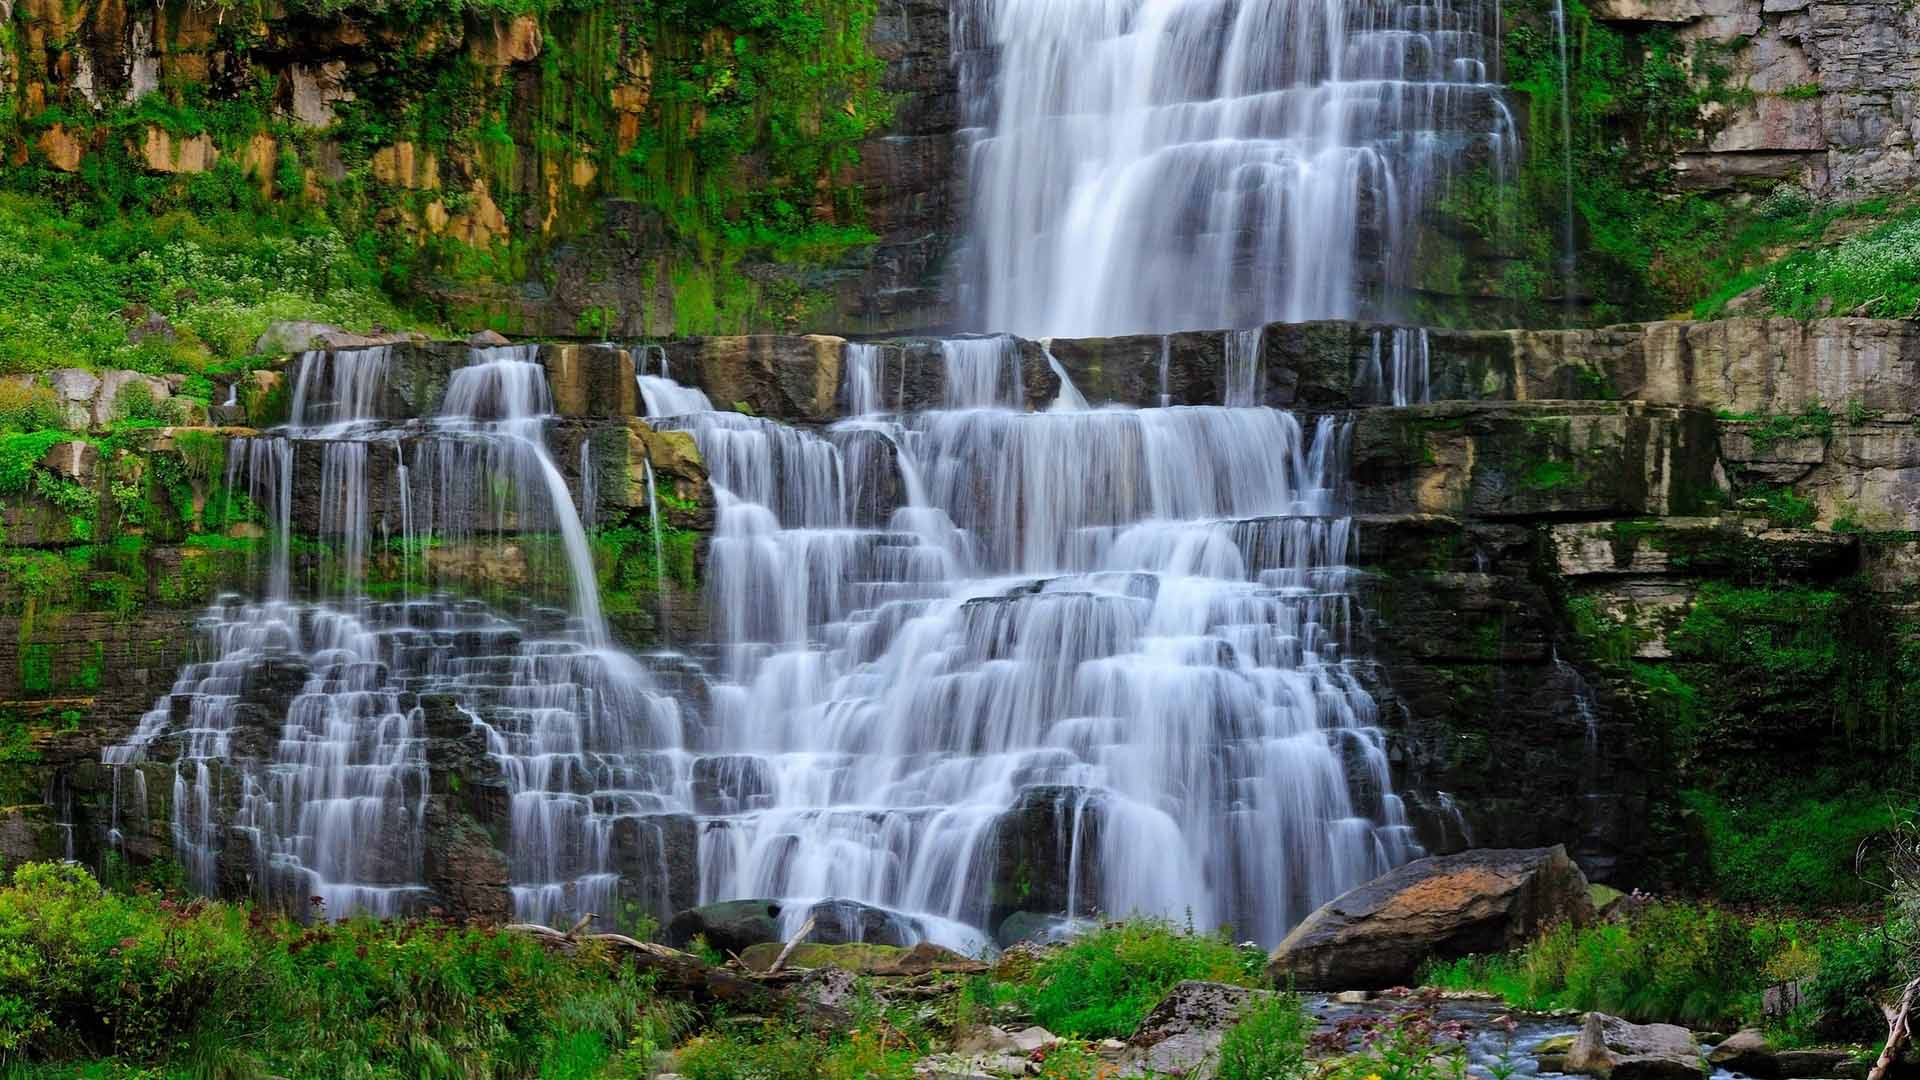 waterfall stream rocks landscape images download free